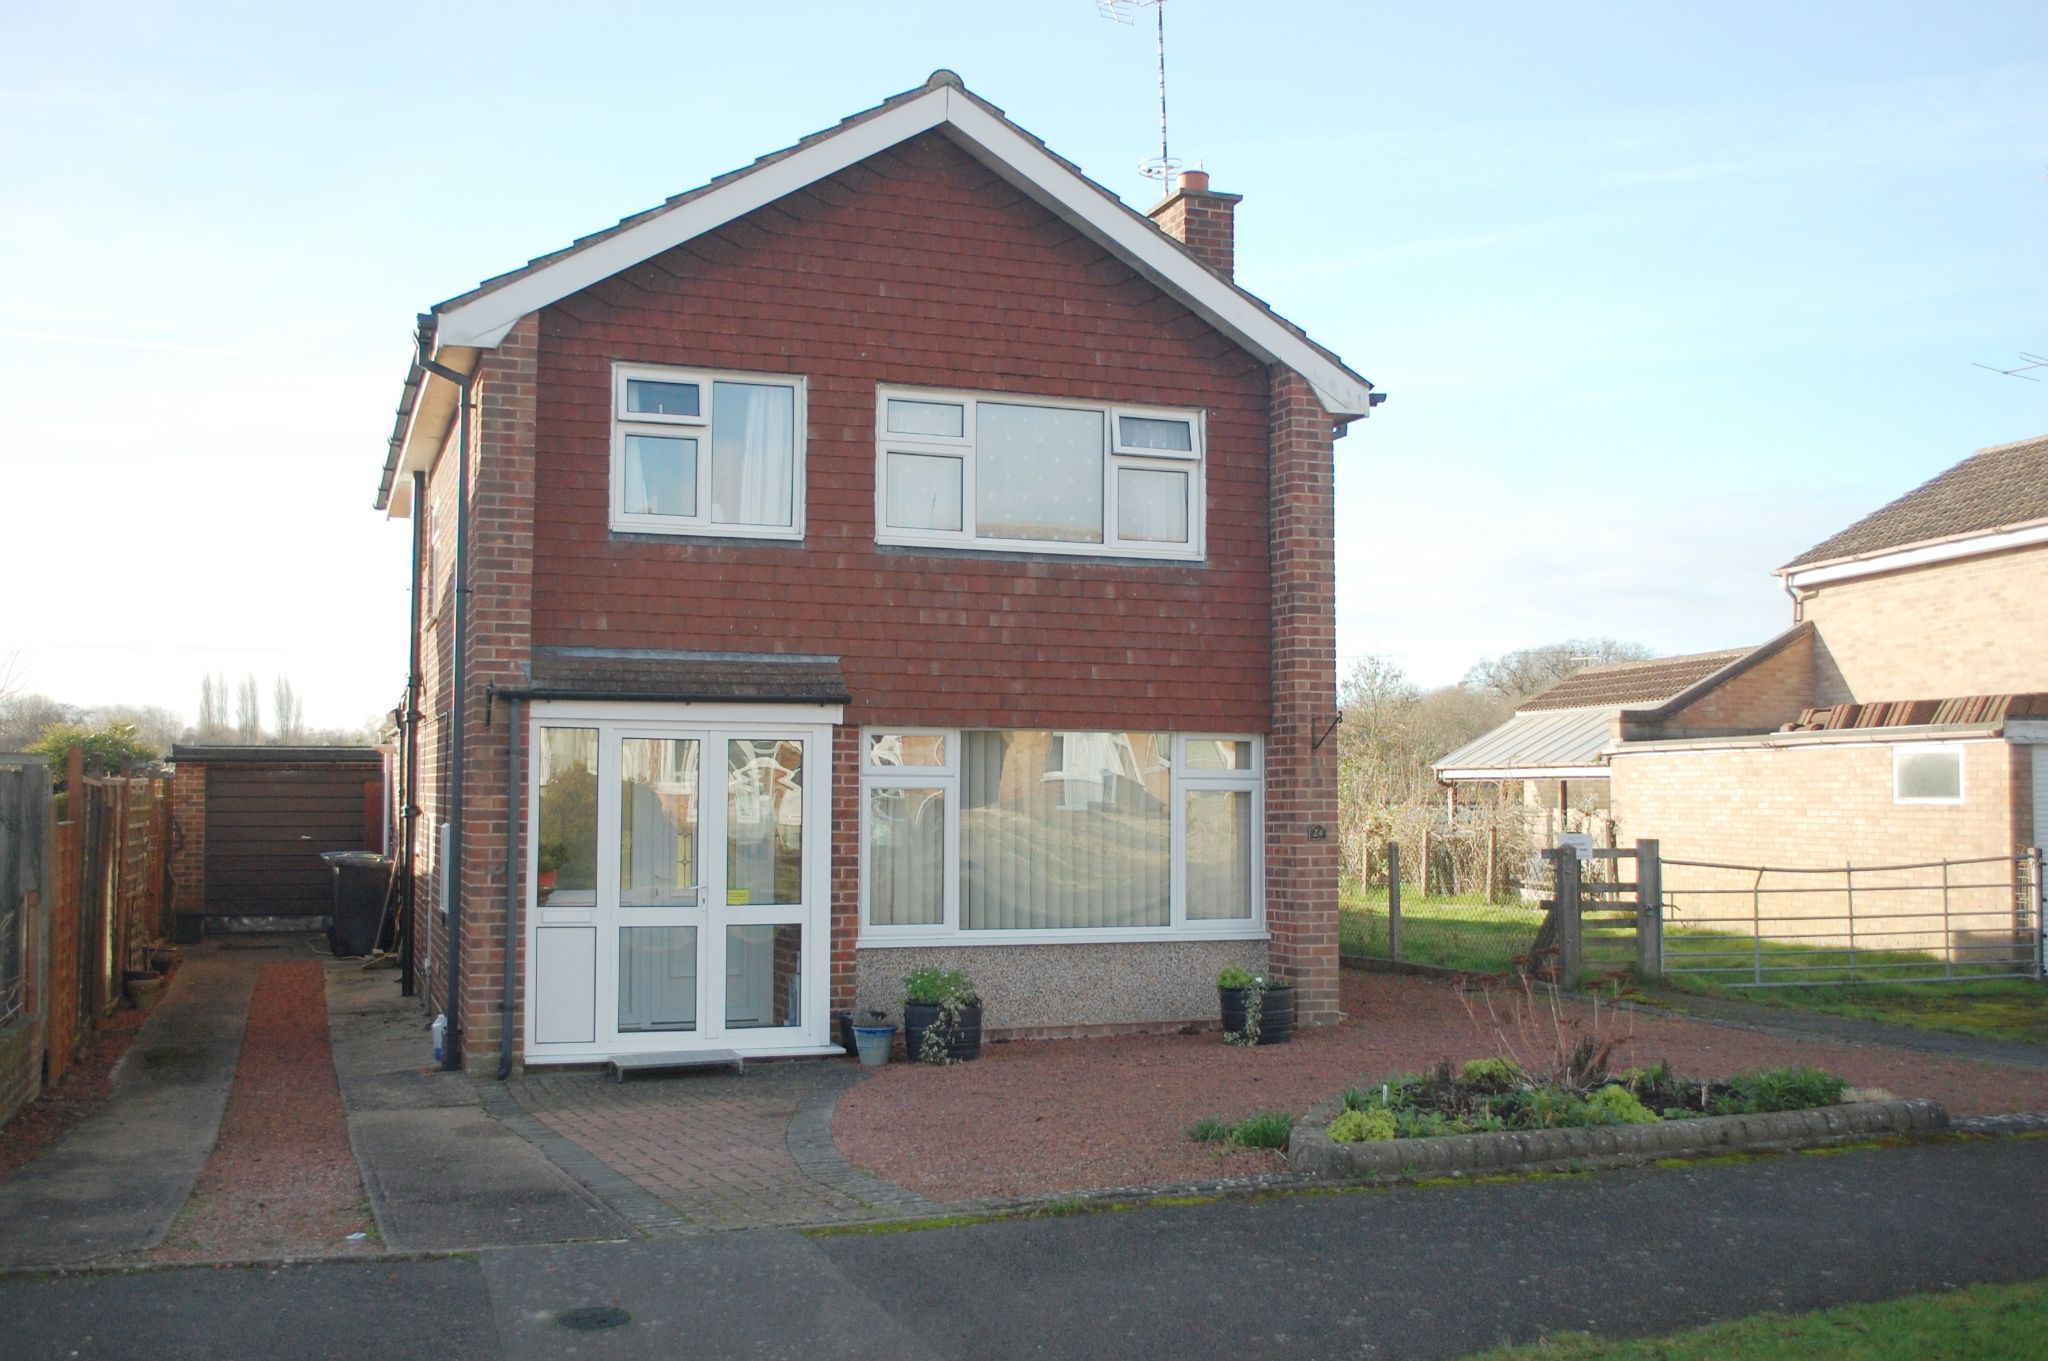 3 bedroom detached house SSTC Alcester - Photograph 1